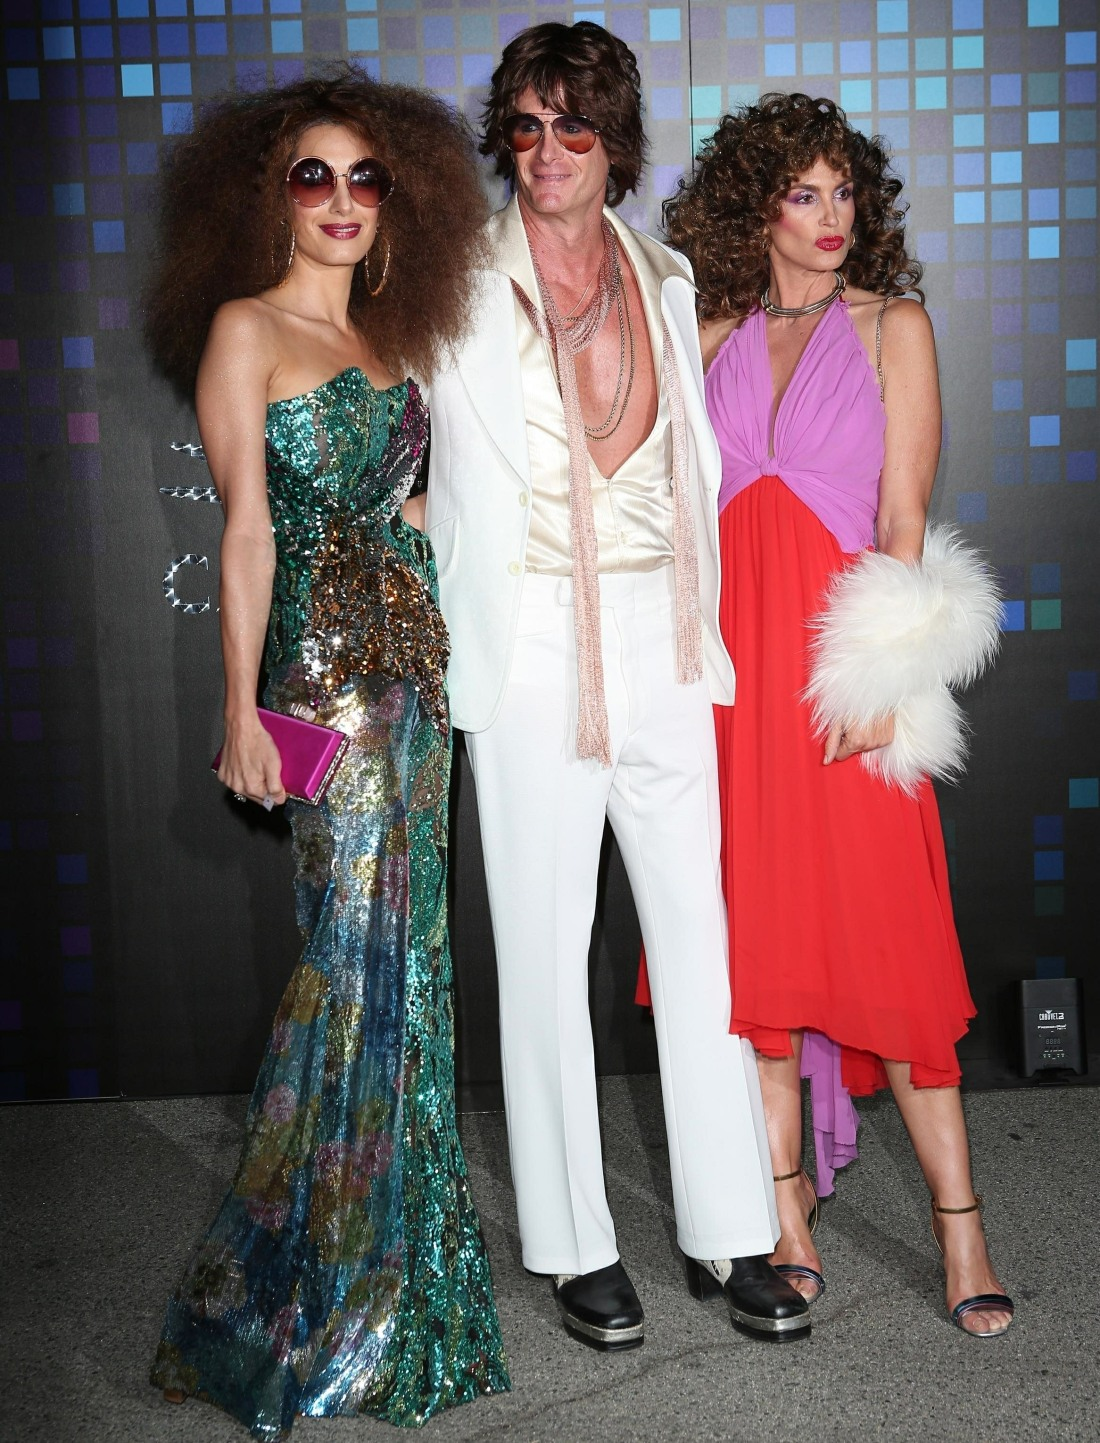 Amal Clooney, Rande Gerber and Cindy Crawford keep it retro at the Casamigos Halloween party